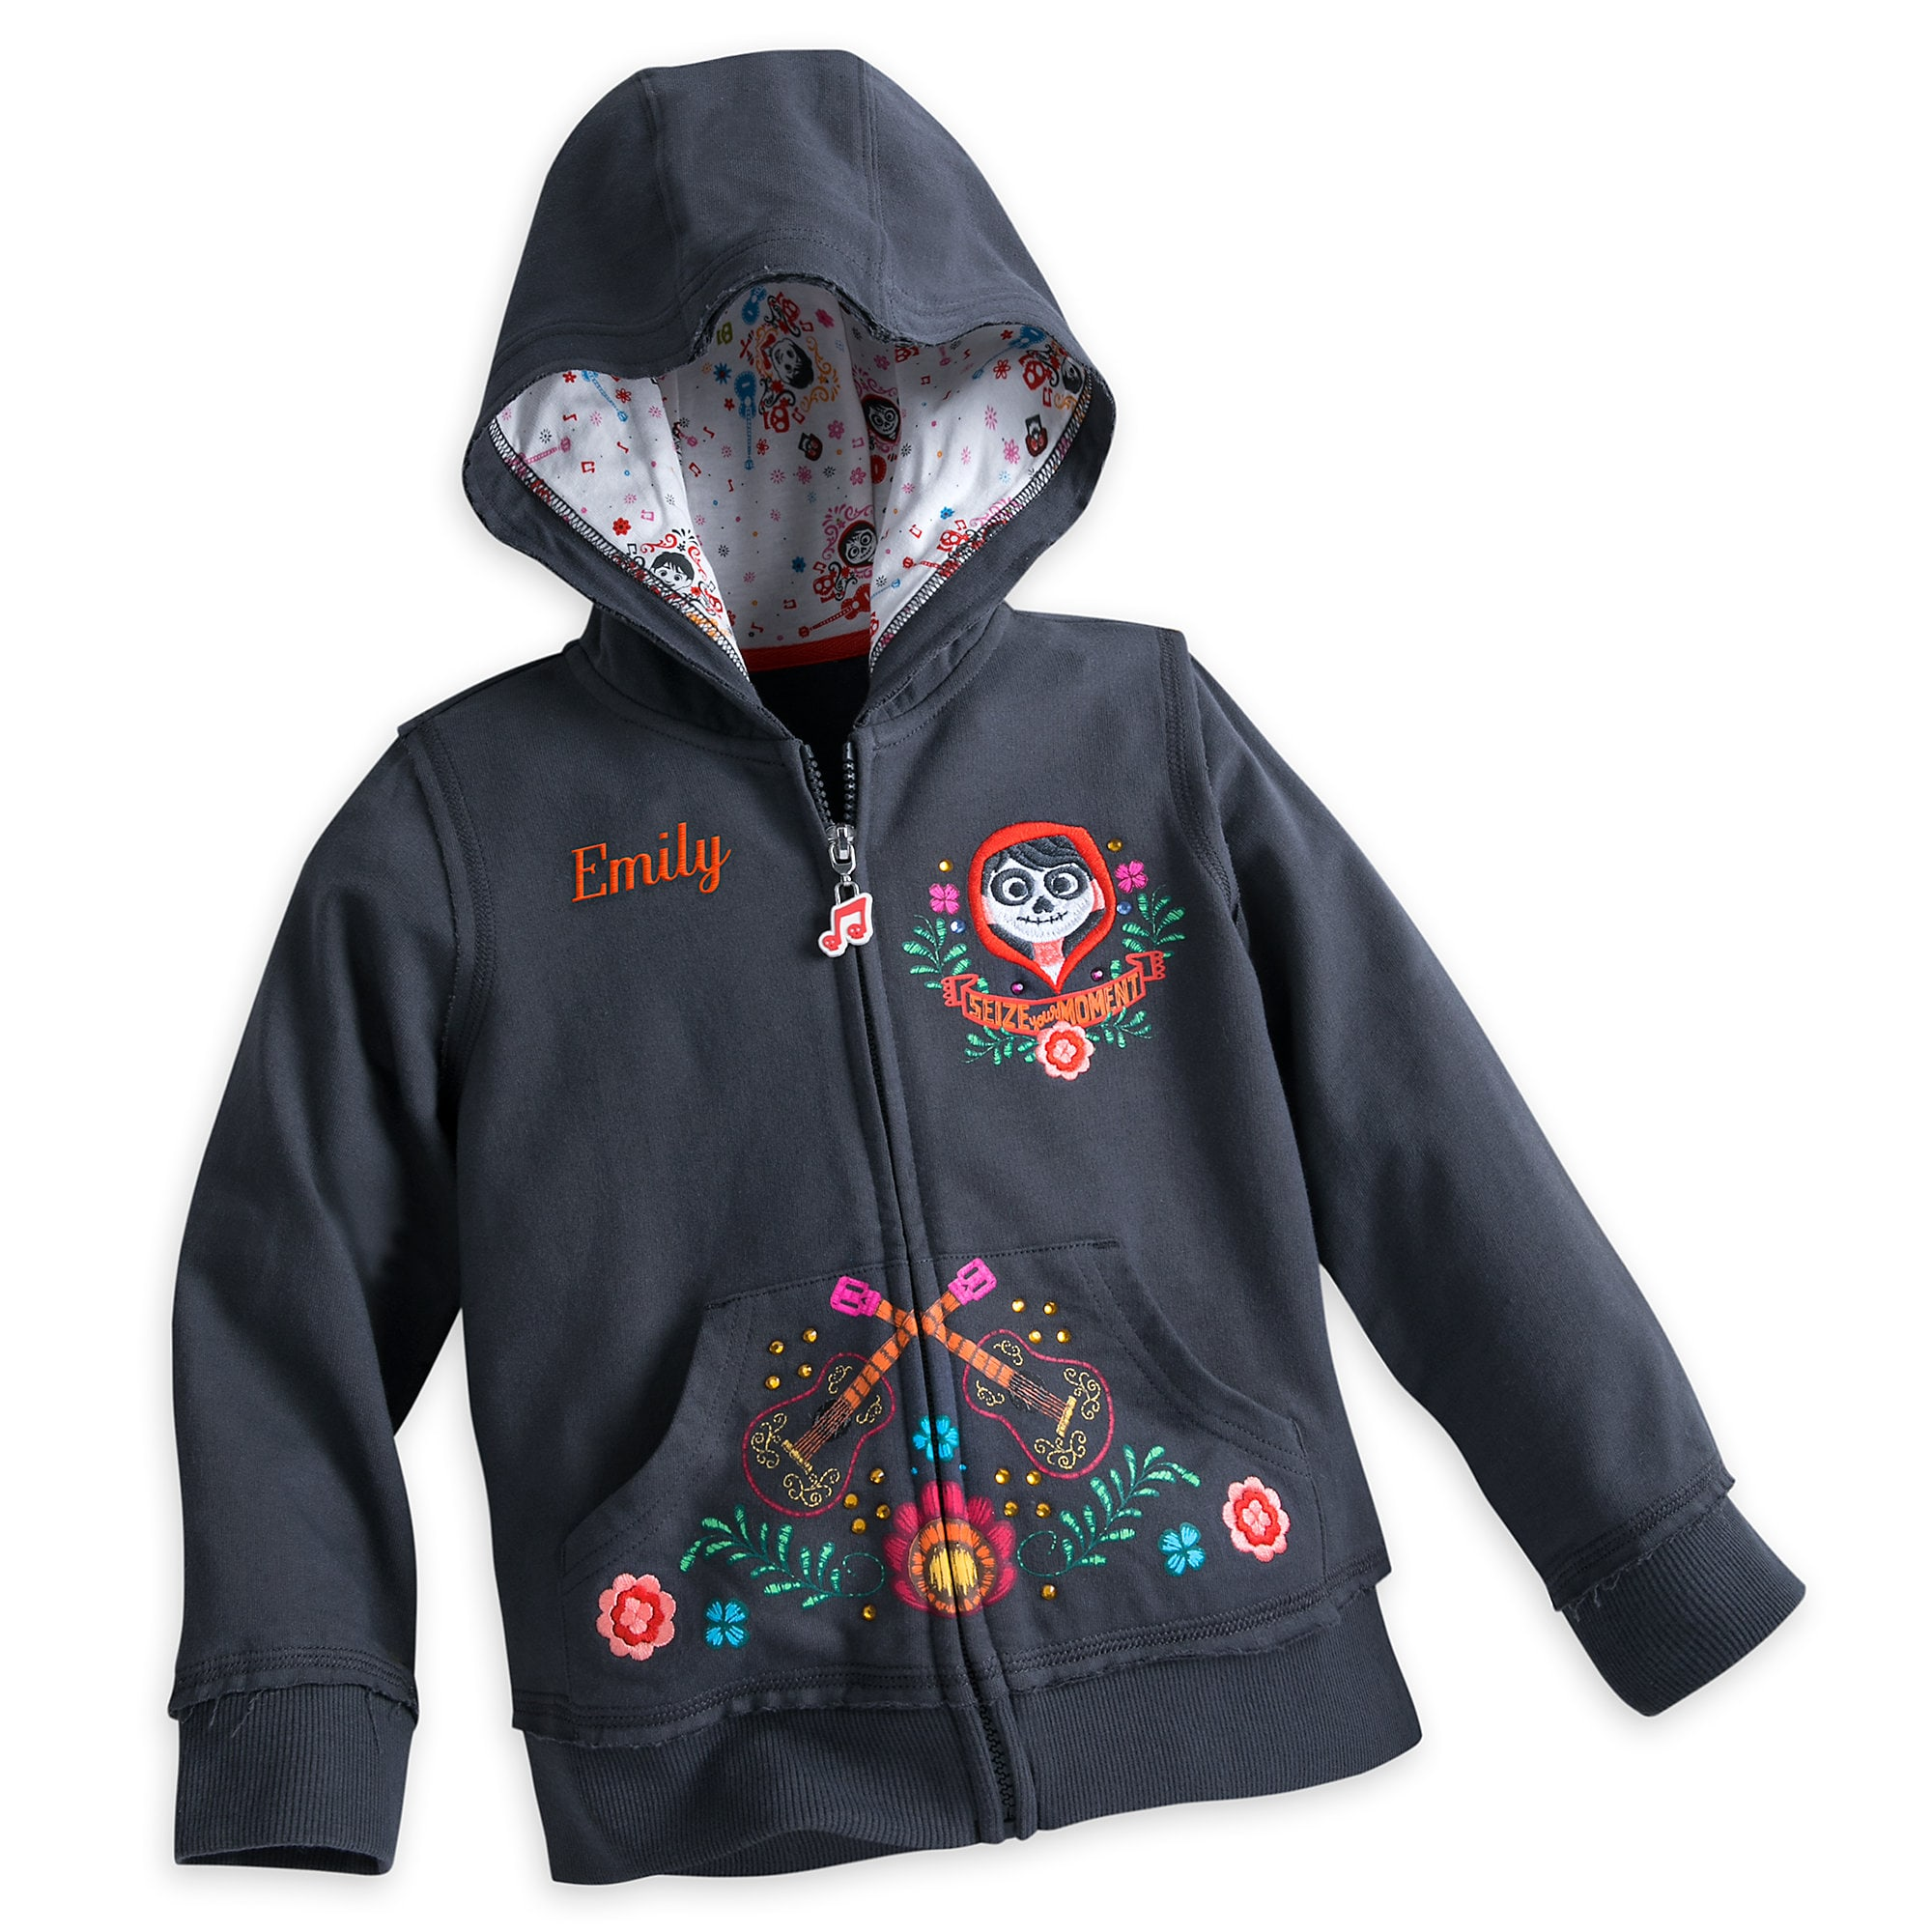 Coco Hoodie - Girls - Personalizable